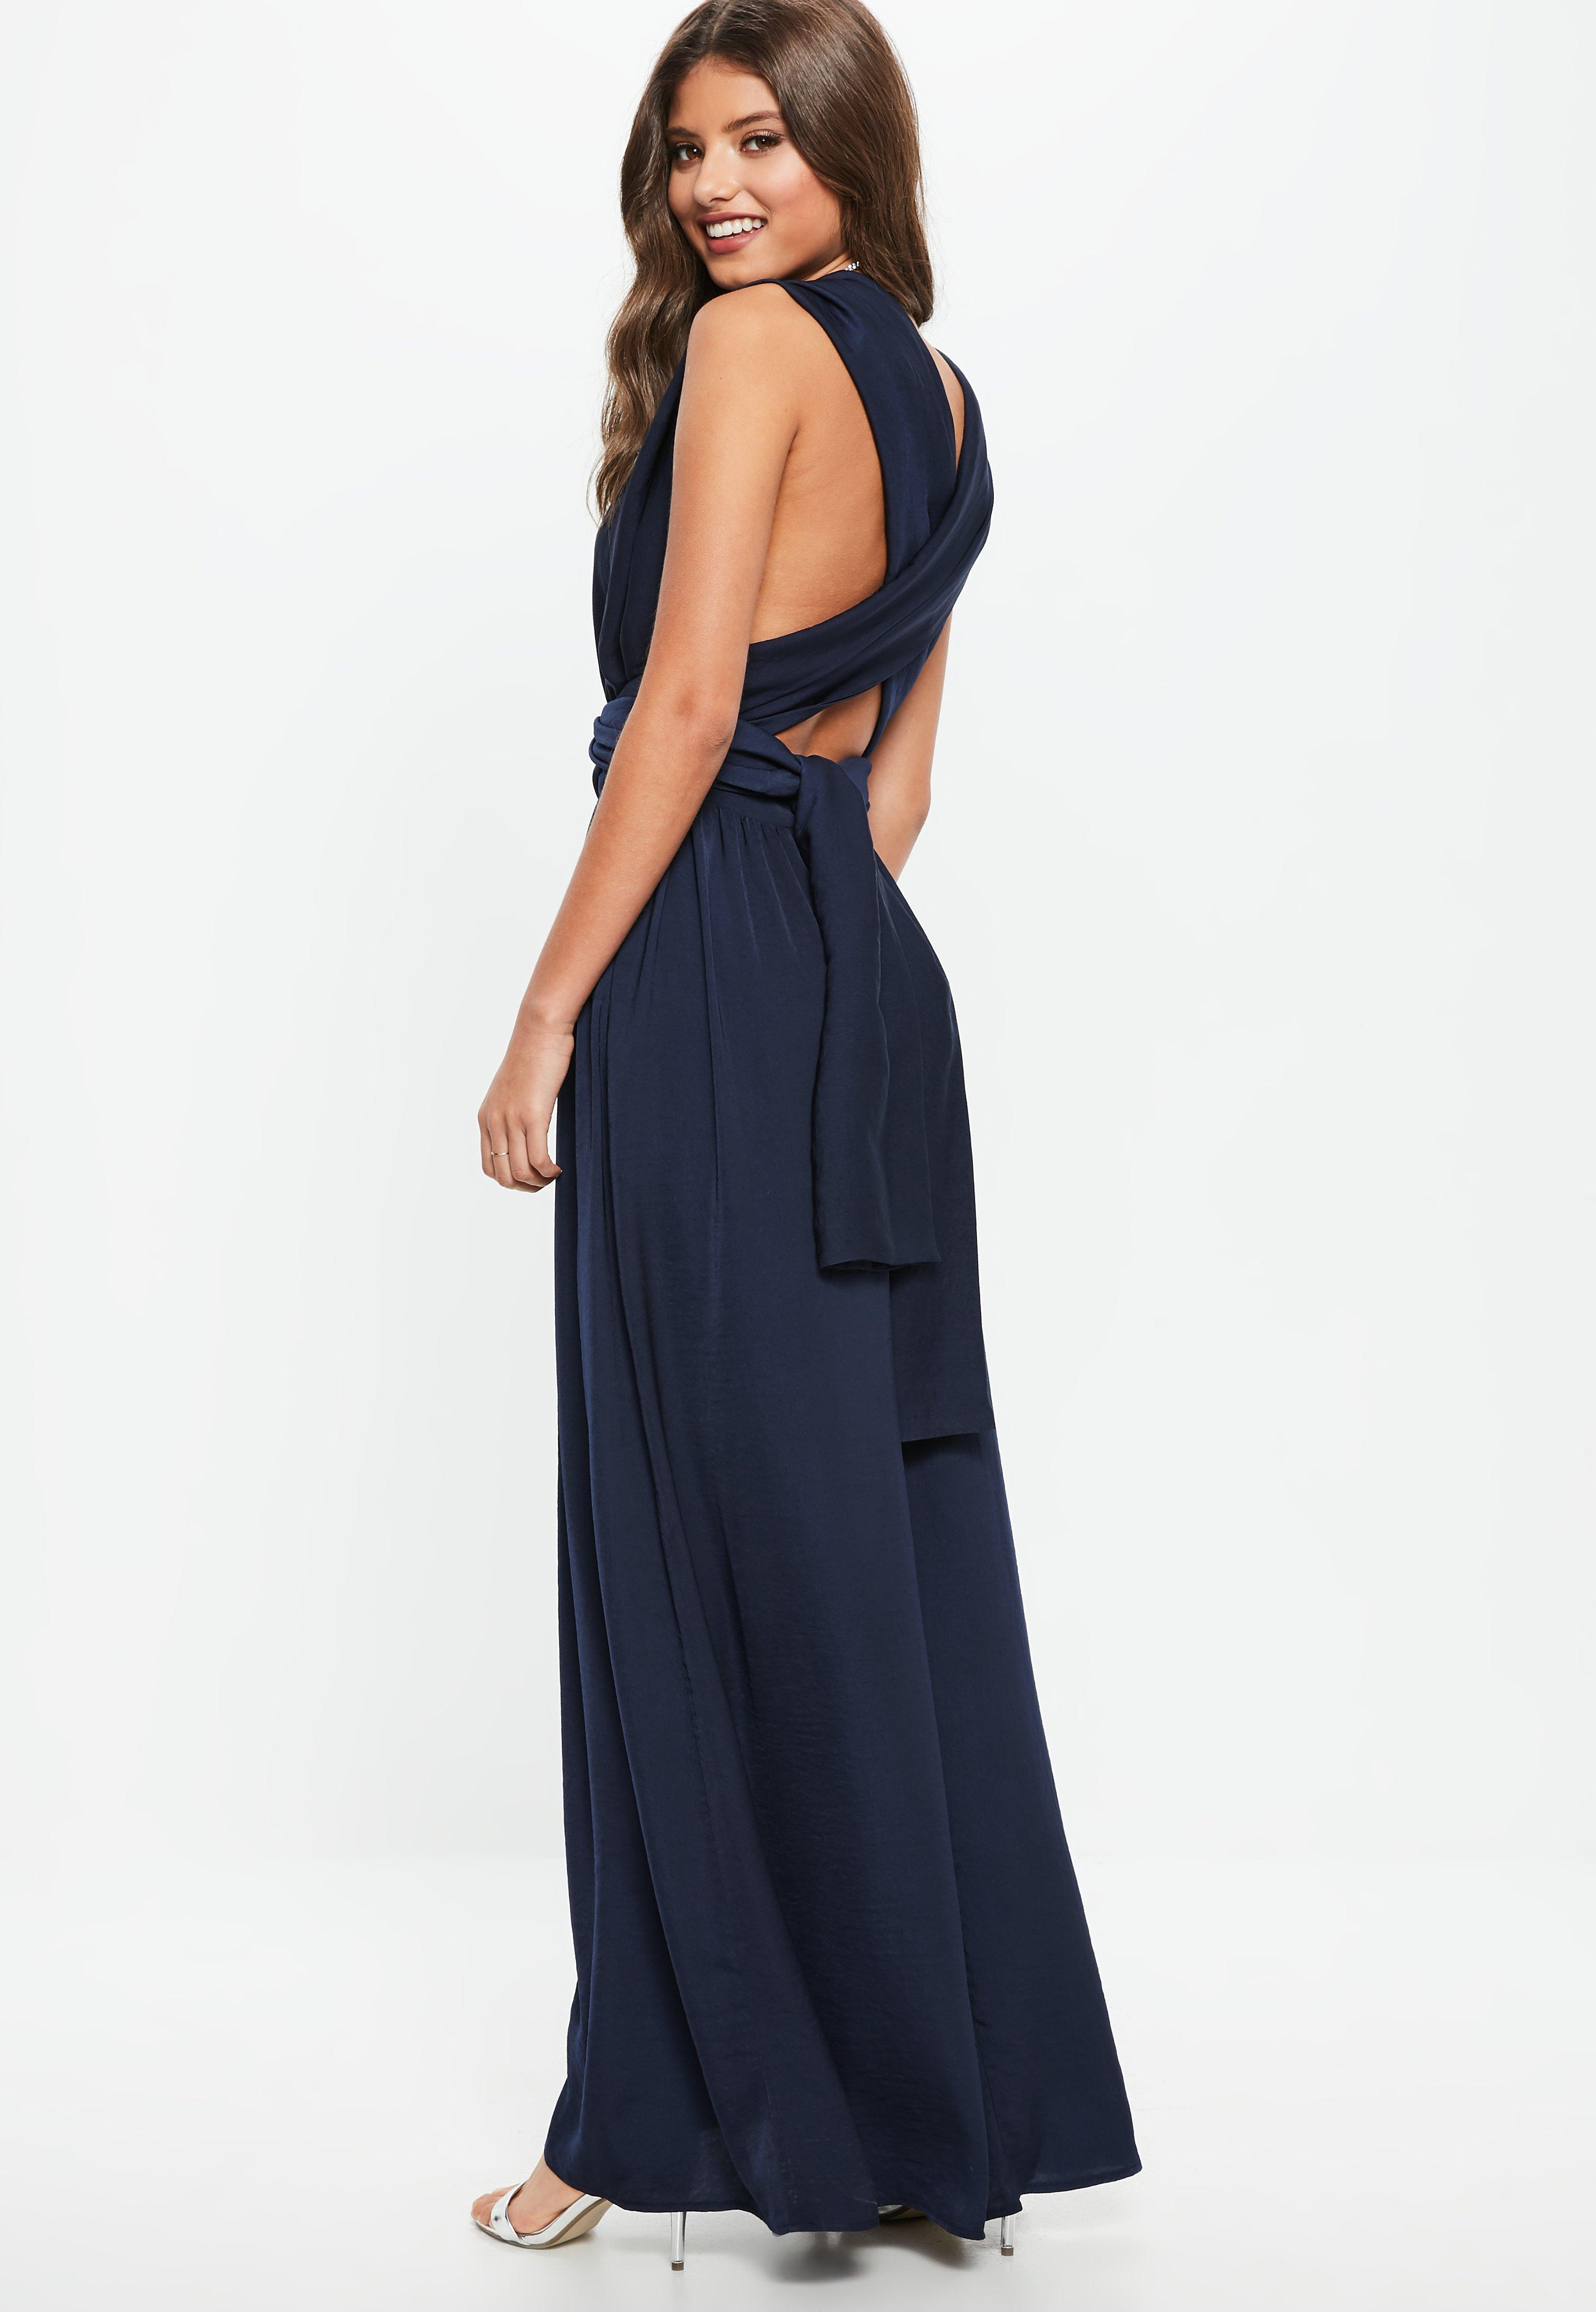 8e6f188fddd Lyst - Missguided Bridesmaid Navy Satin Multiway Maxi Dress in Blue